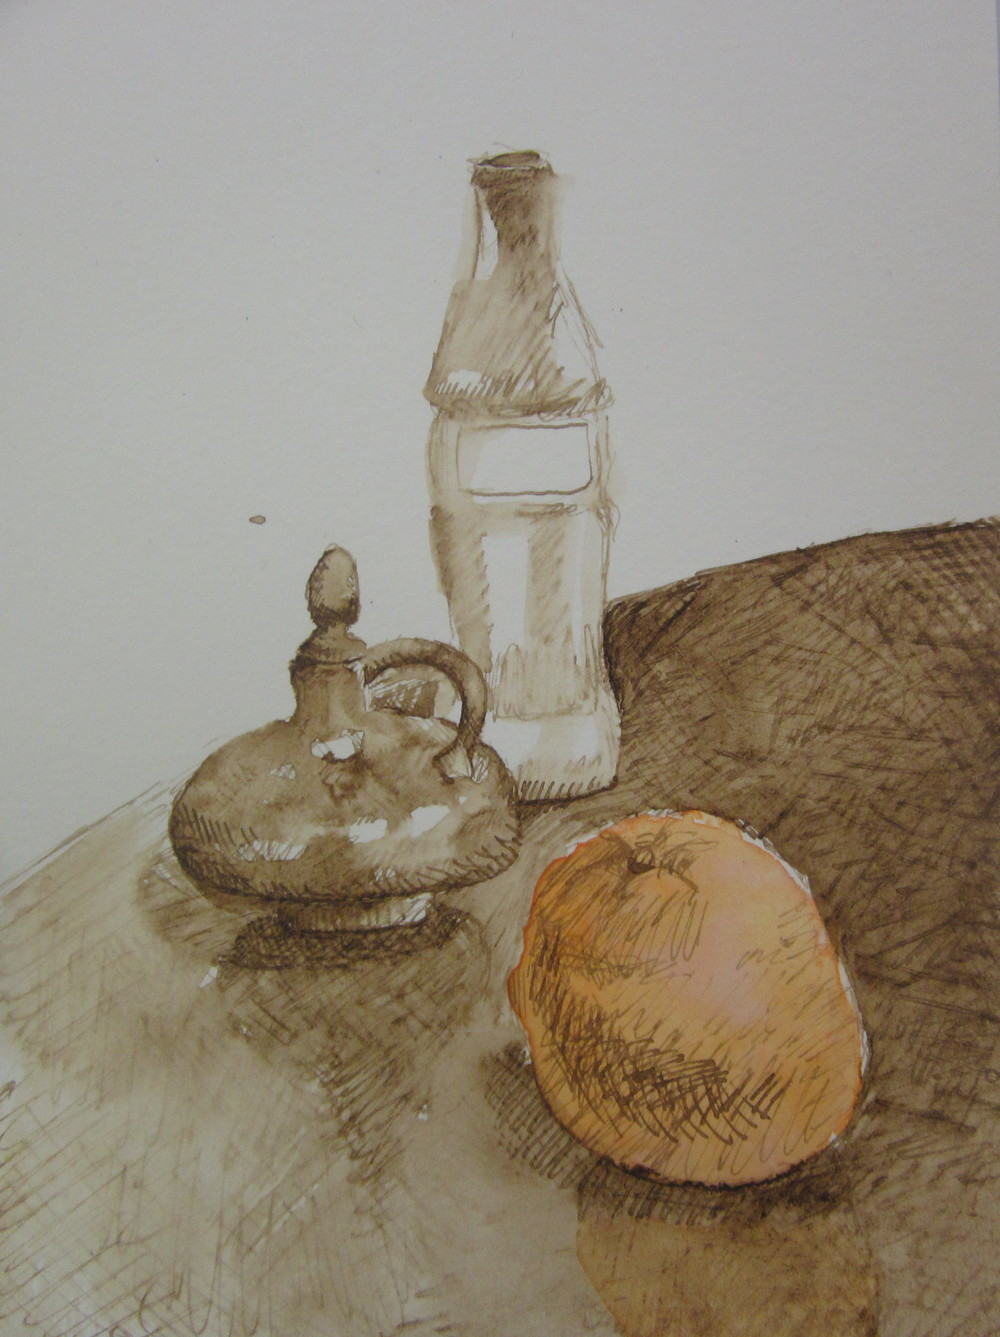 Still life with coke bottle, orange, and oil pot